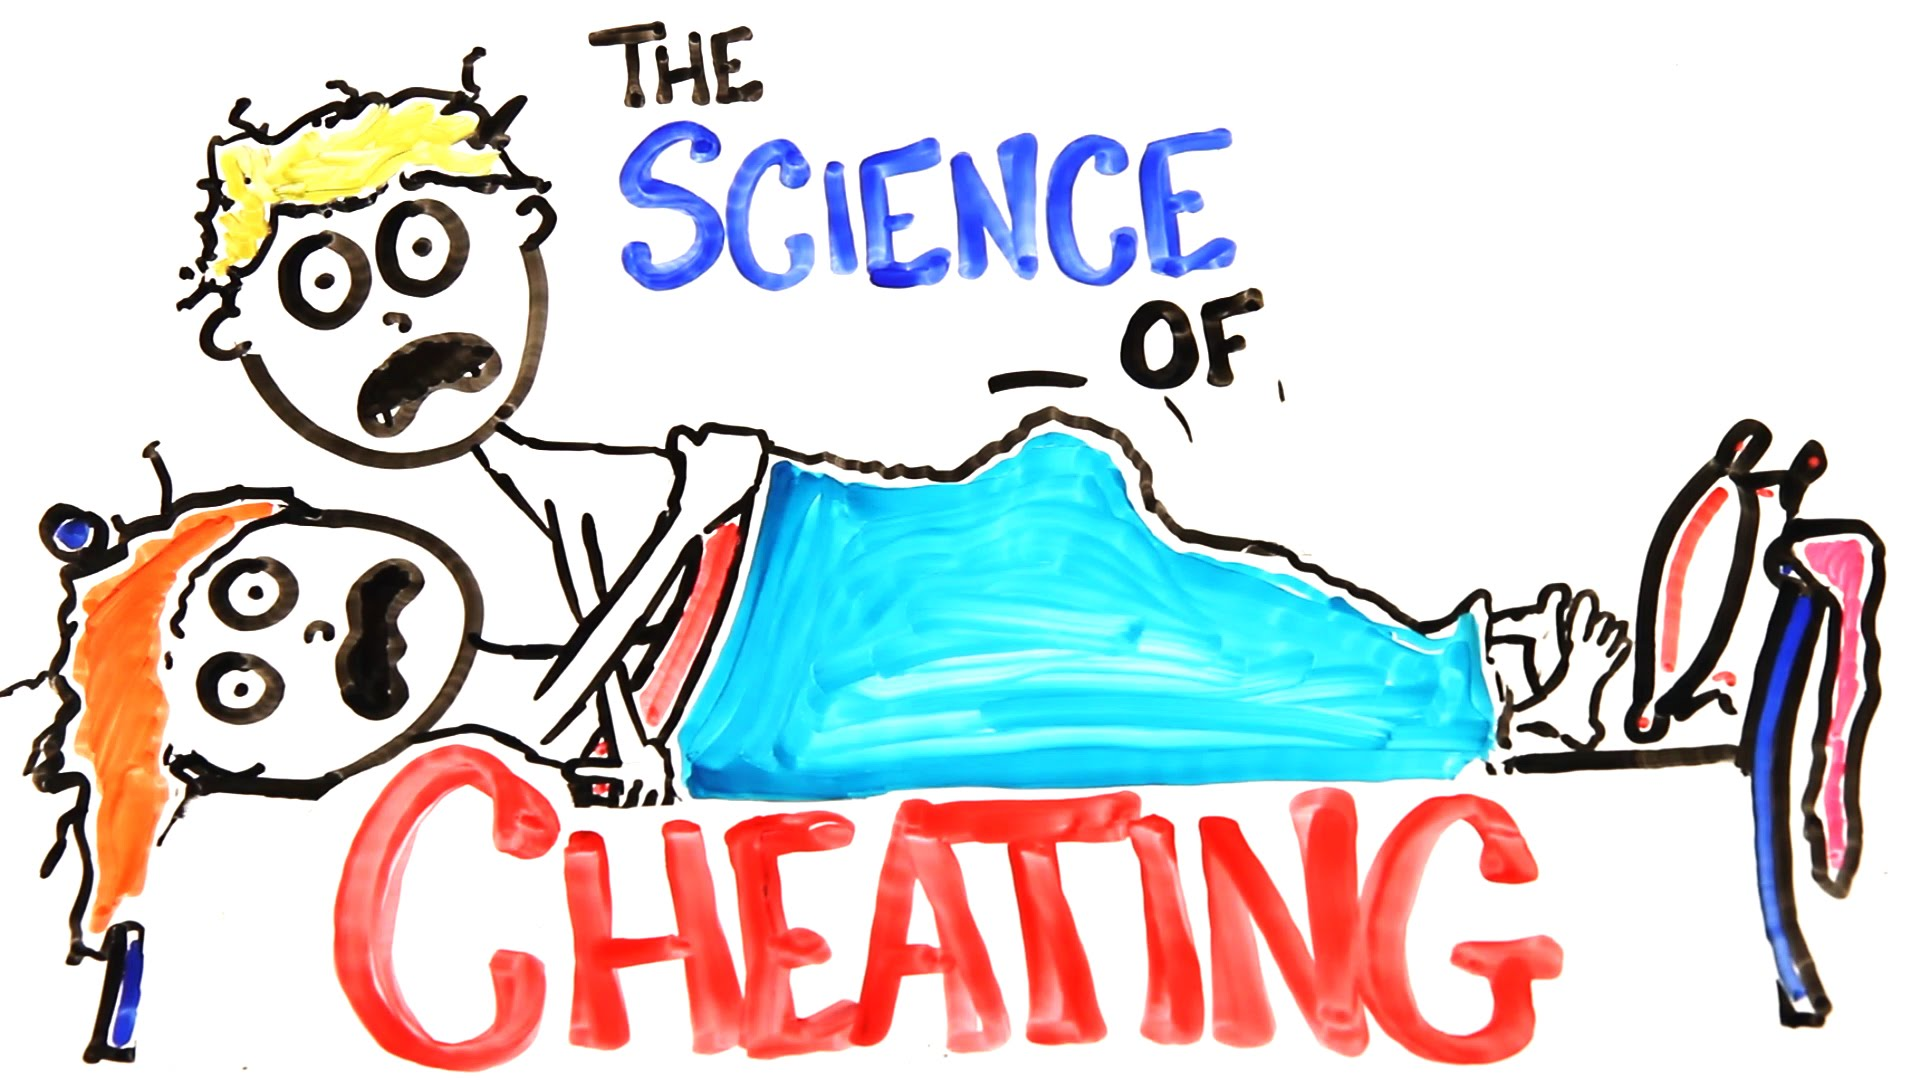 the science of cheating